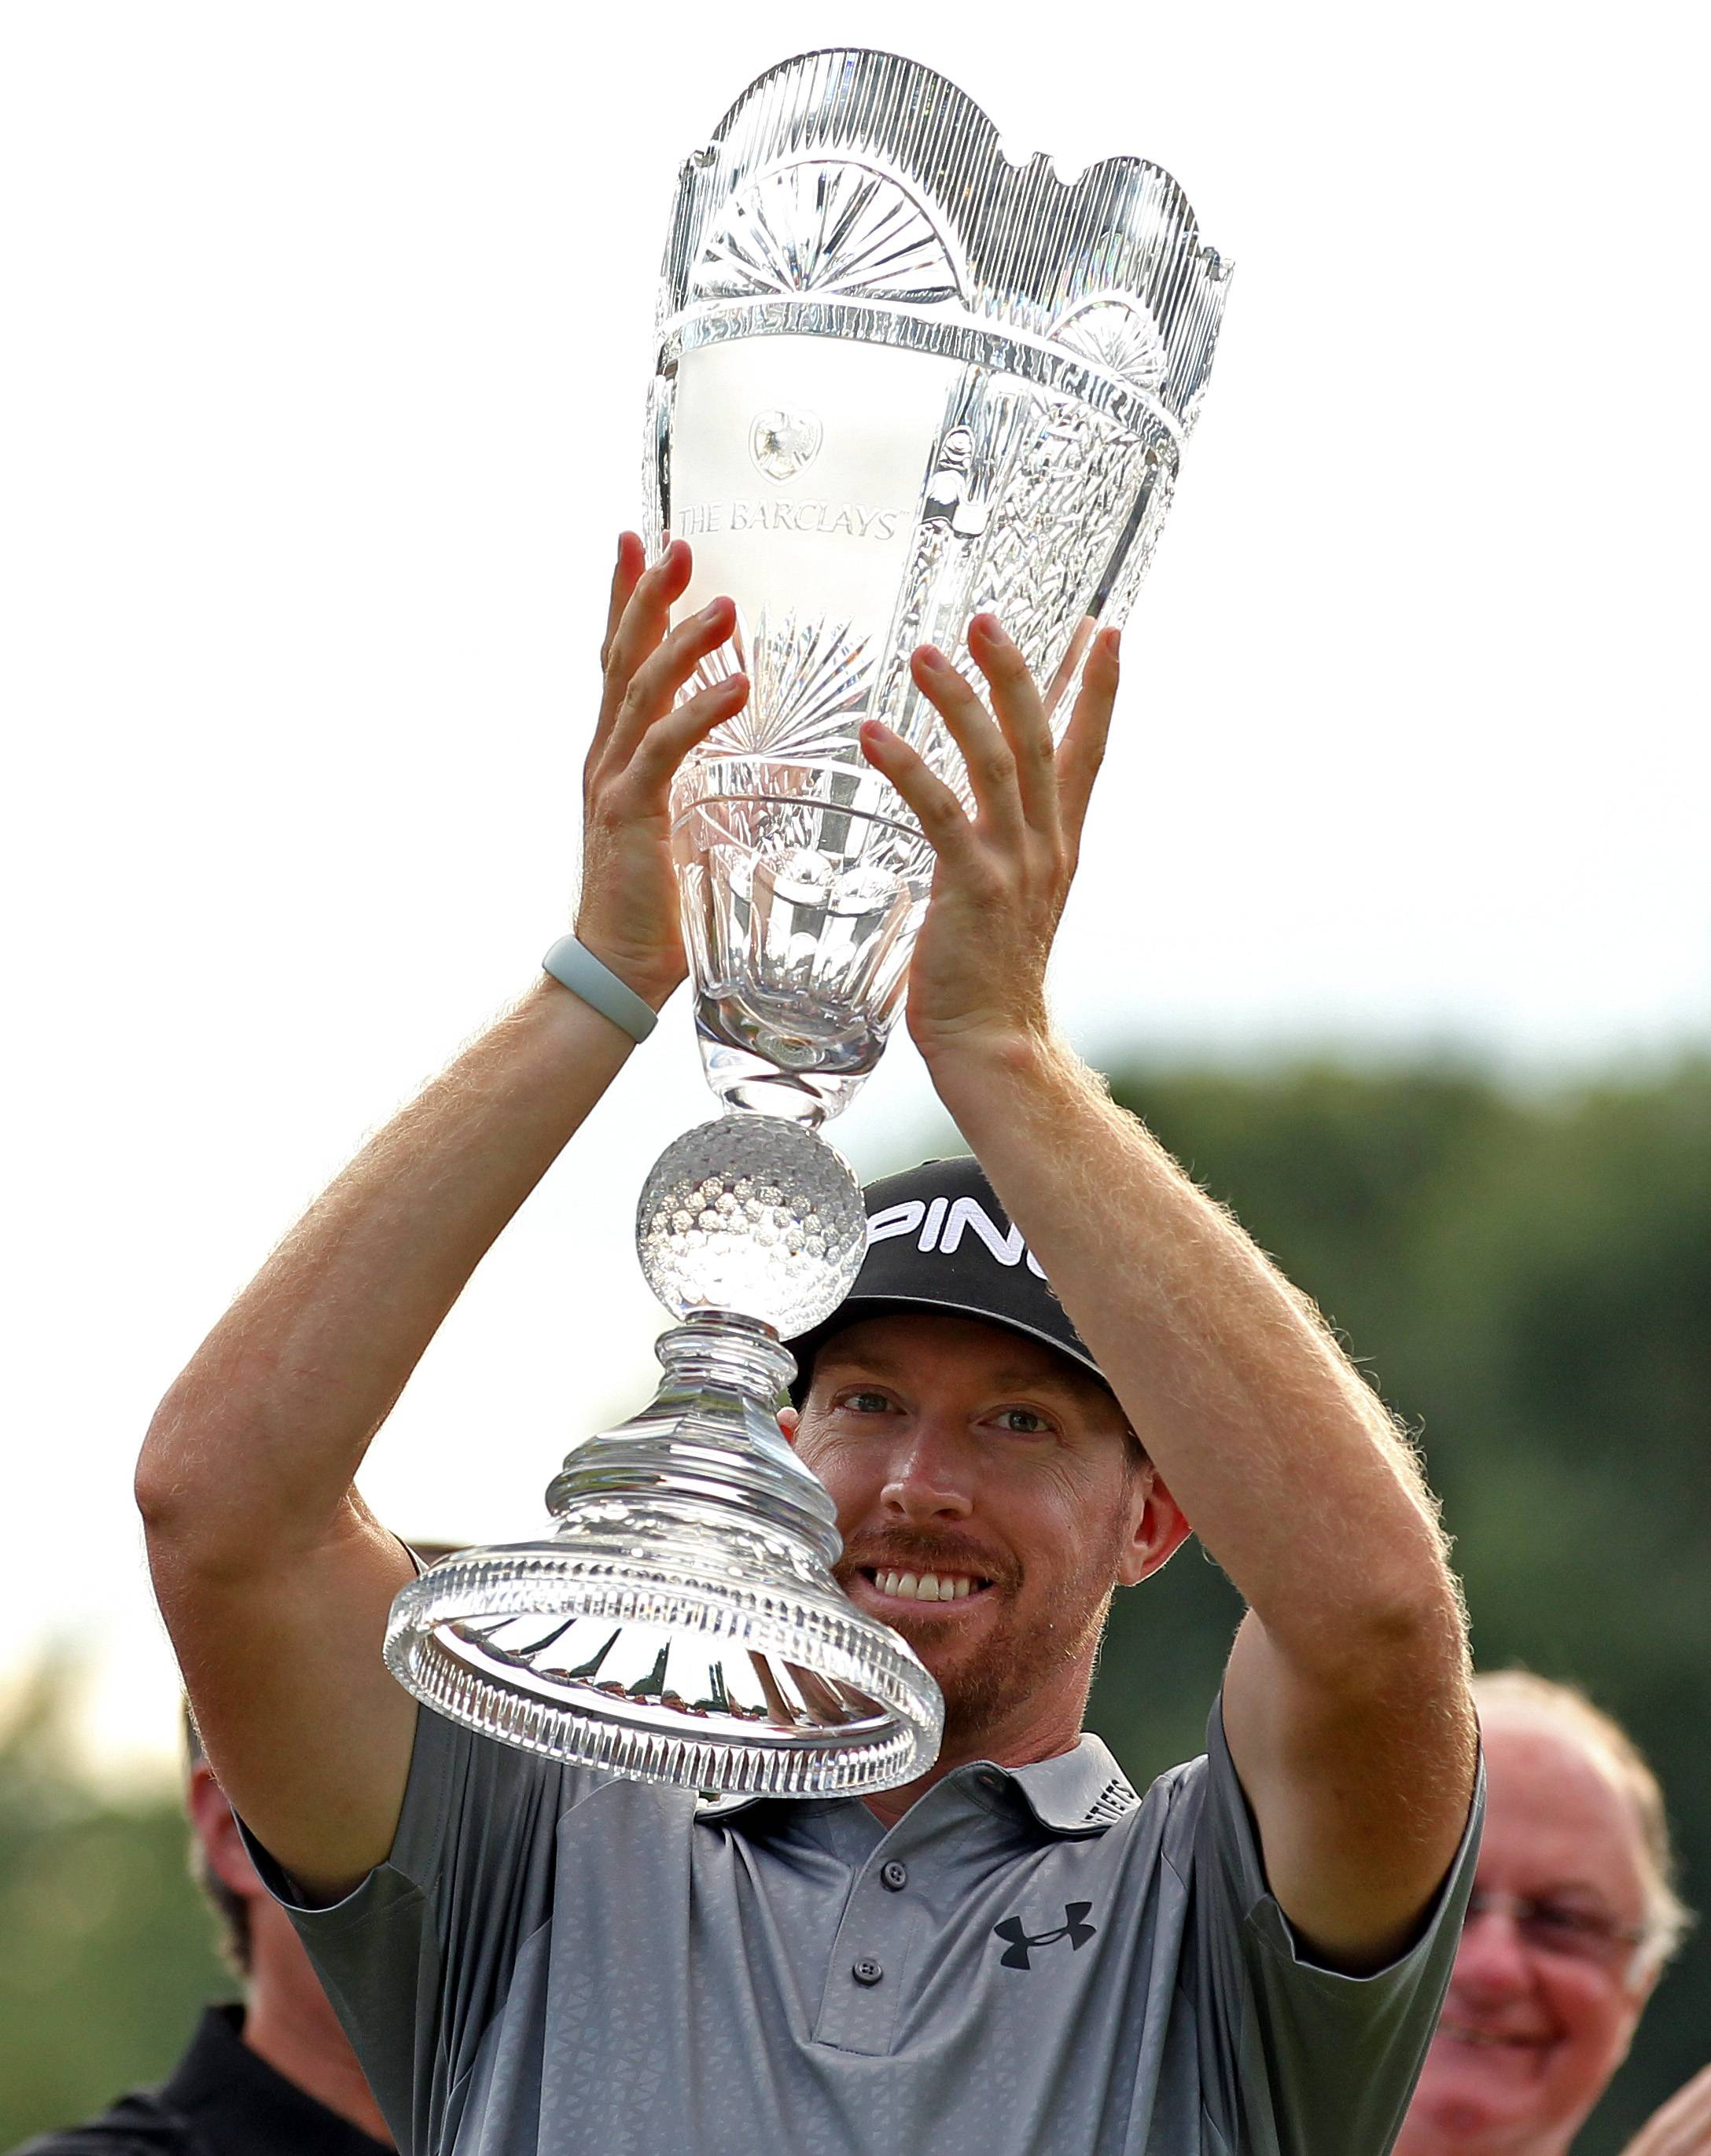 Hunter Mahan holds up the trophy after winning at The Barclays golf tournament Sunday in Paramus, N.J. Mahan won the tournament with a 14 under-par 270.